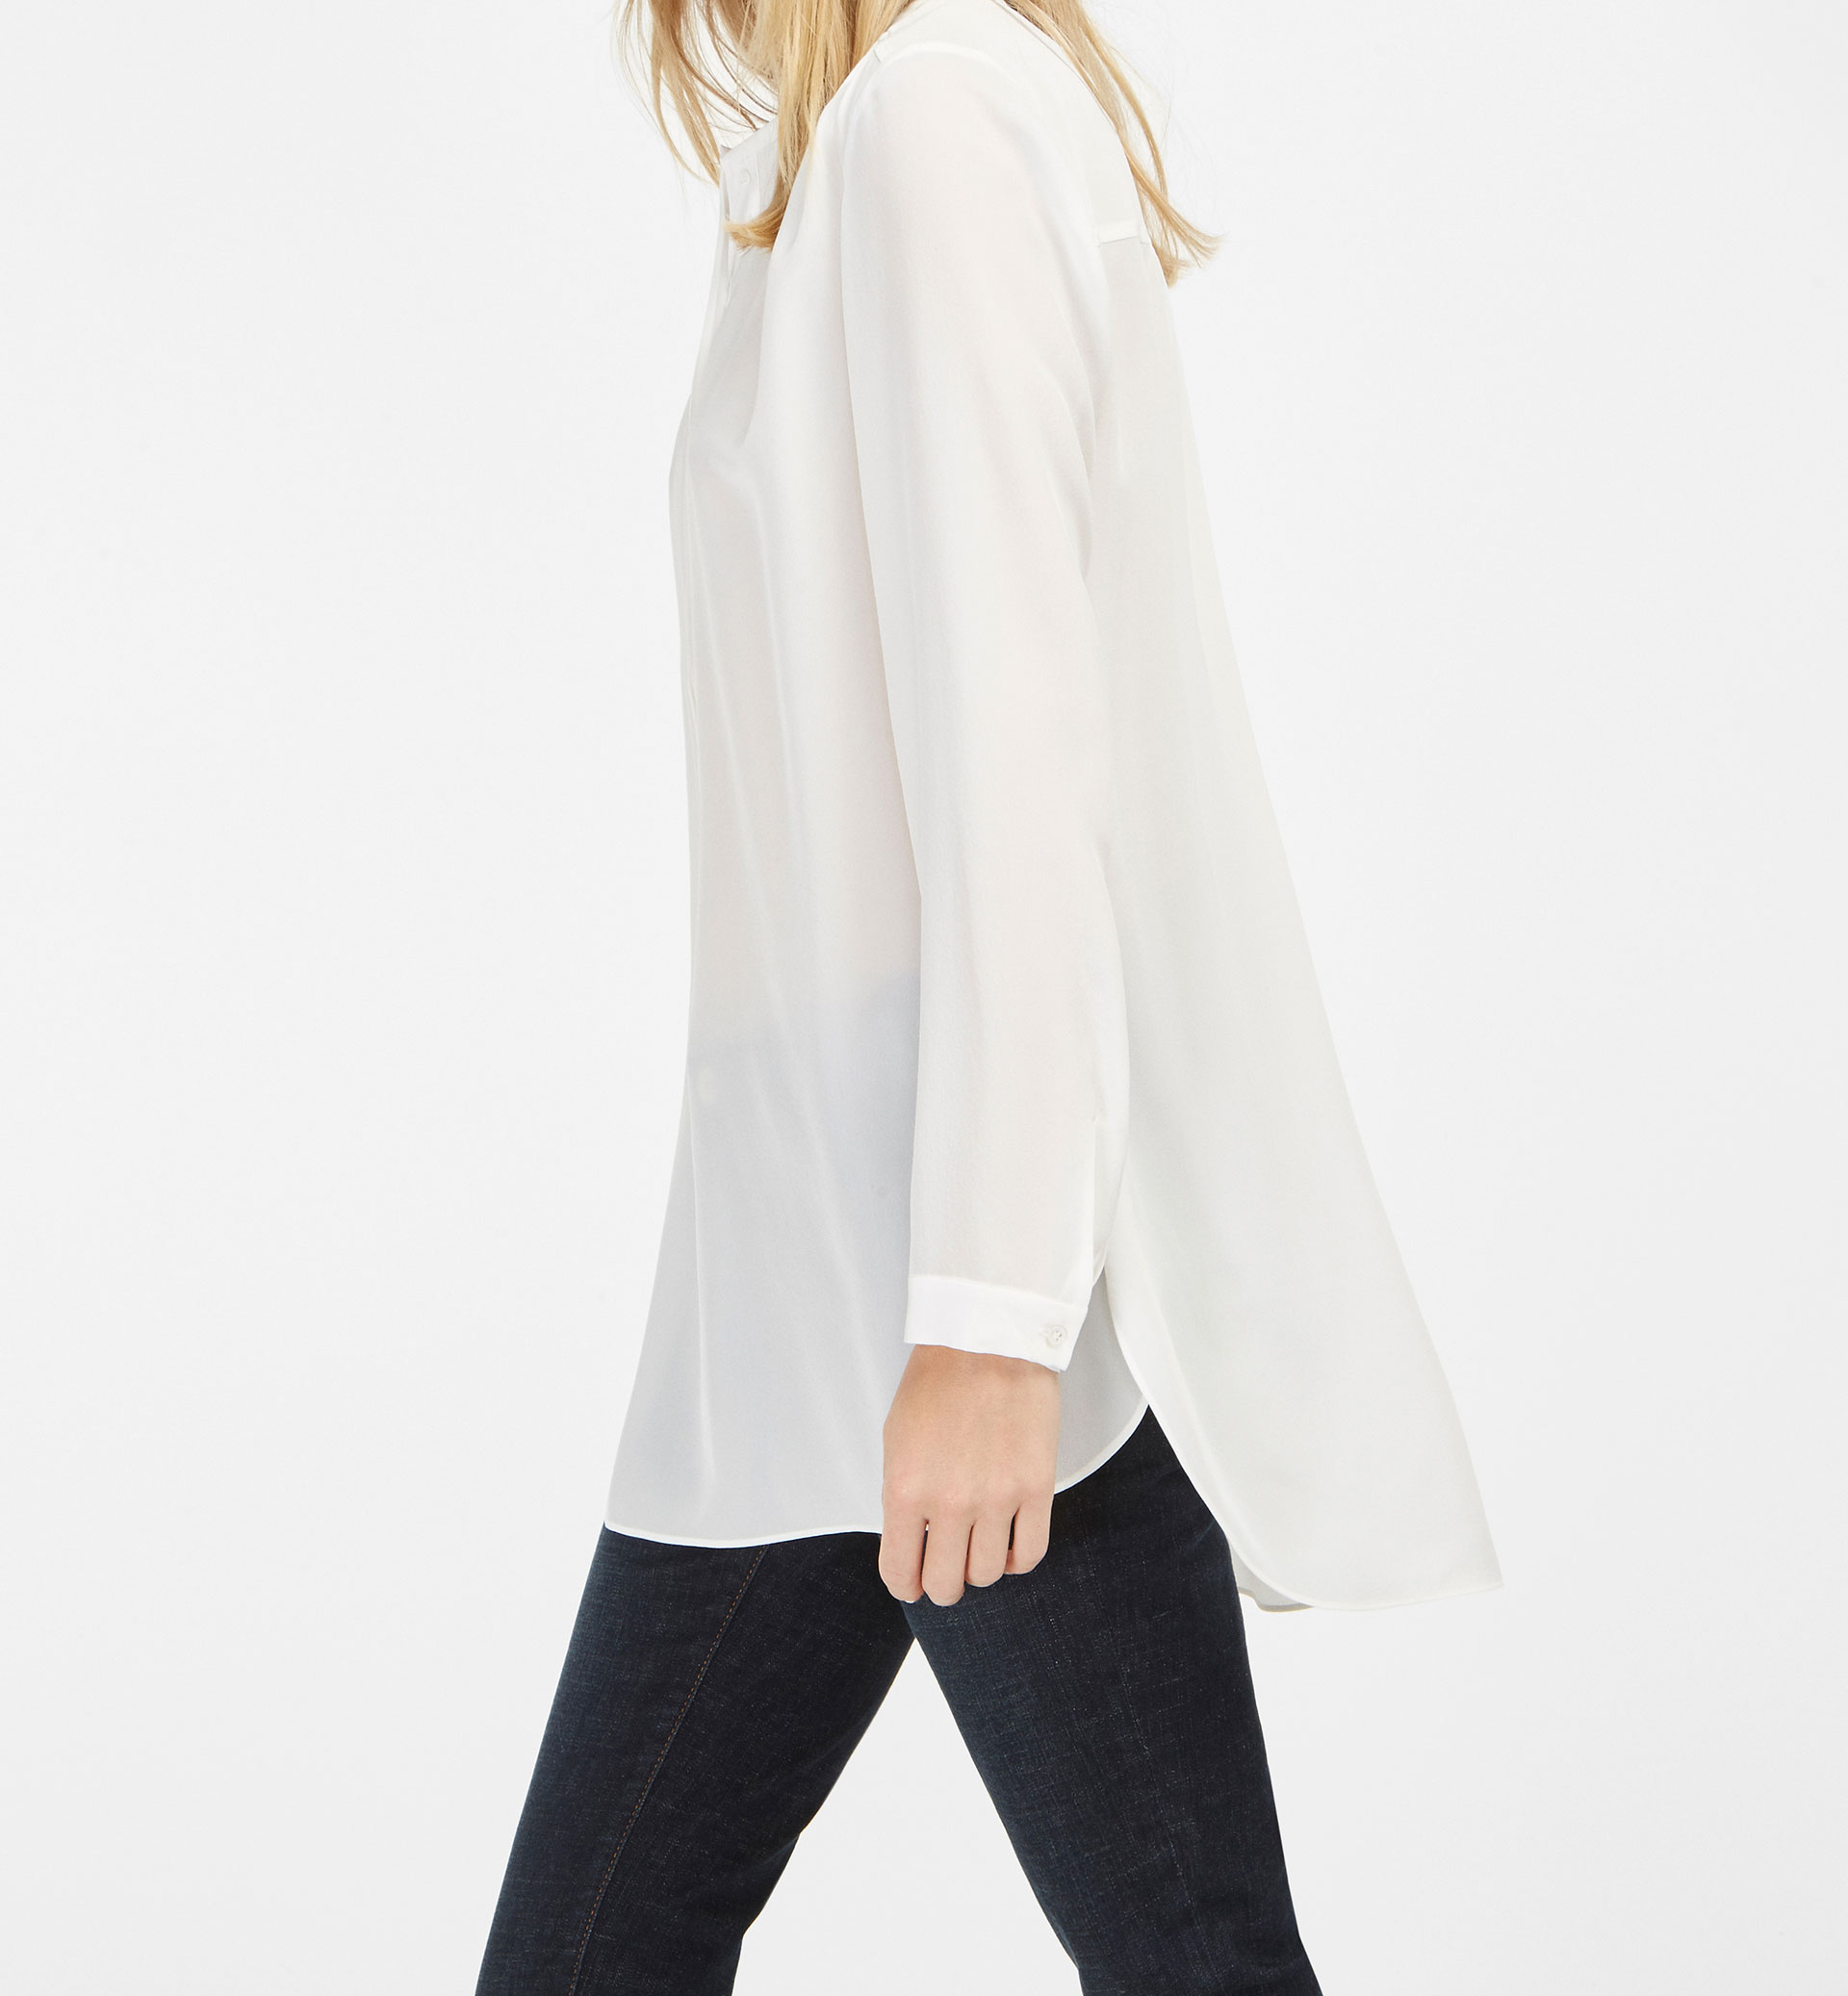 WHITE 100% SILK OVERSIZED BLOUSE